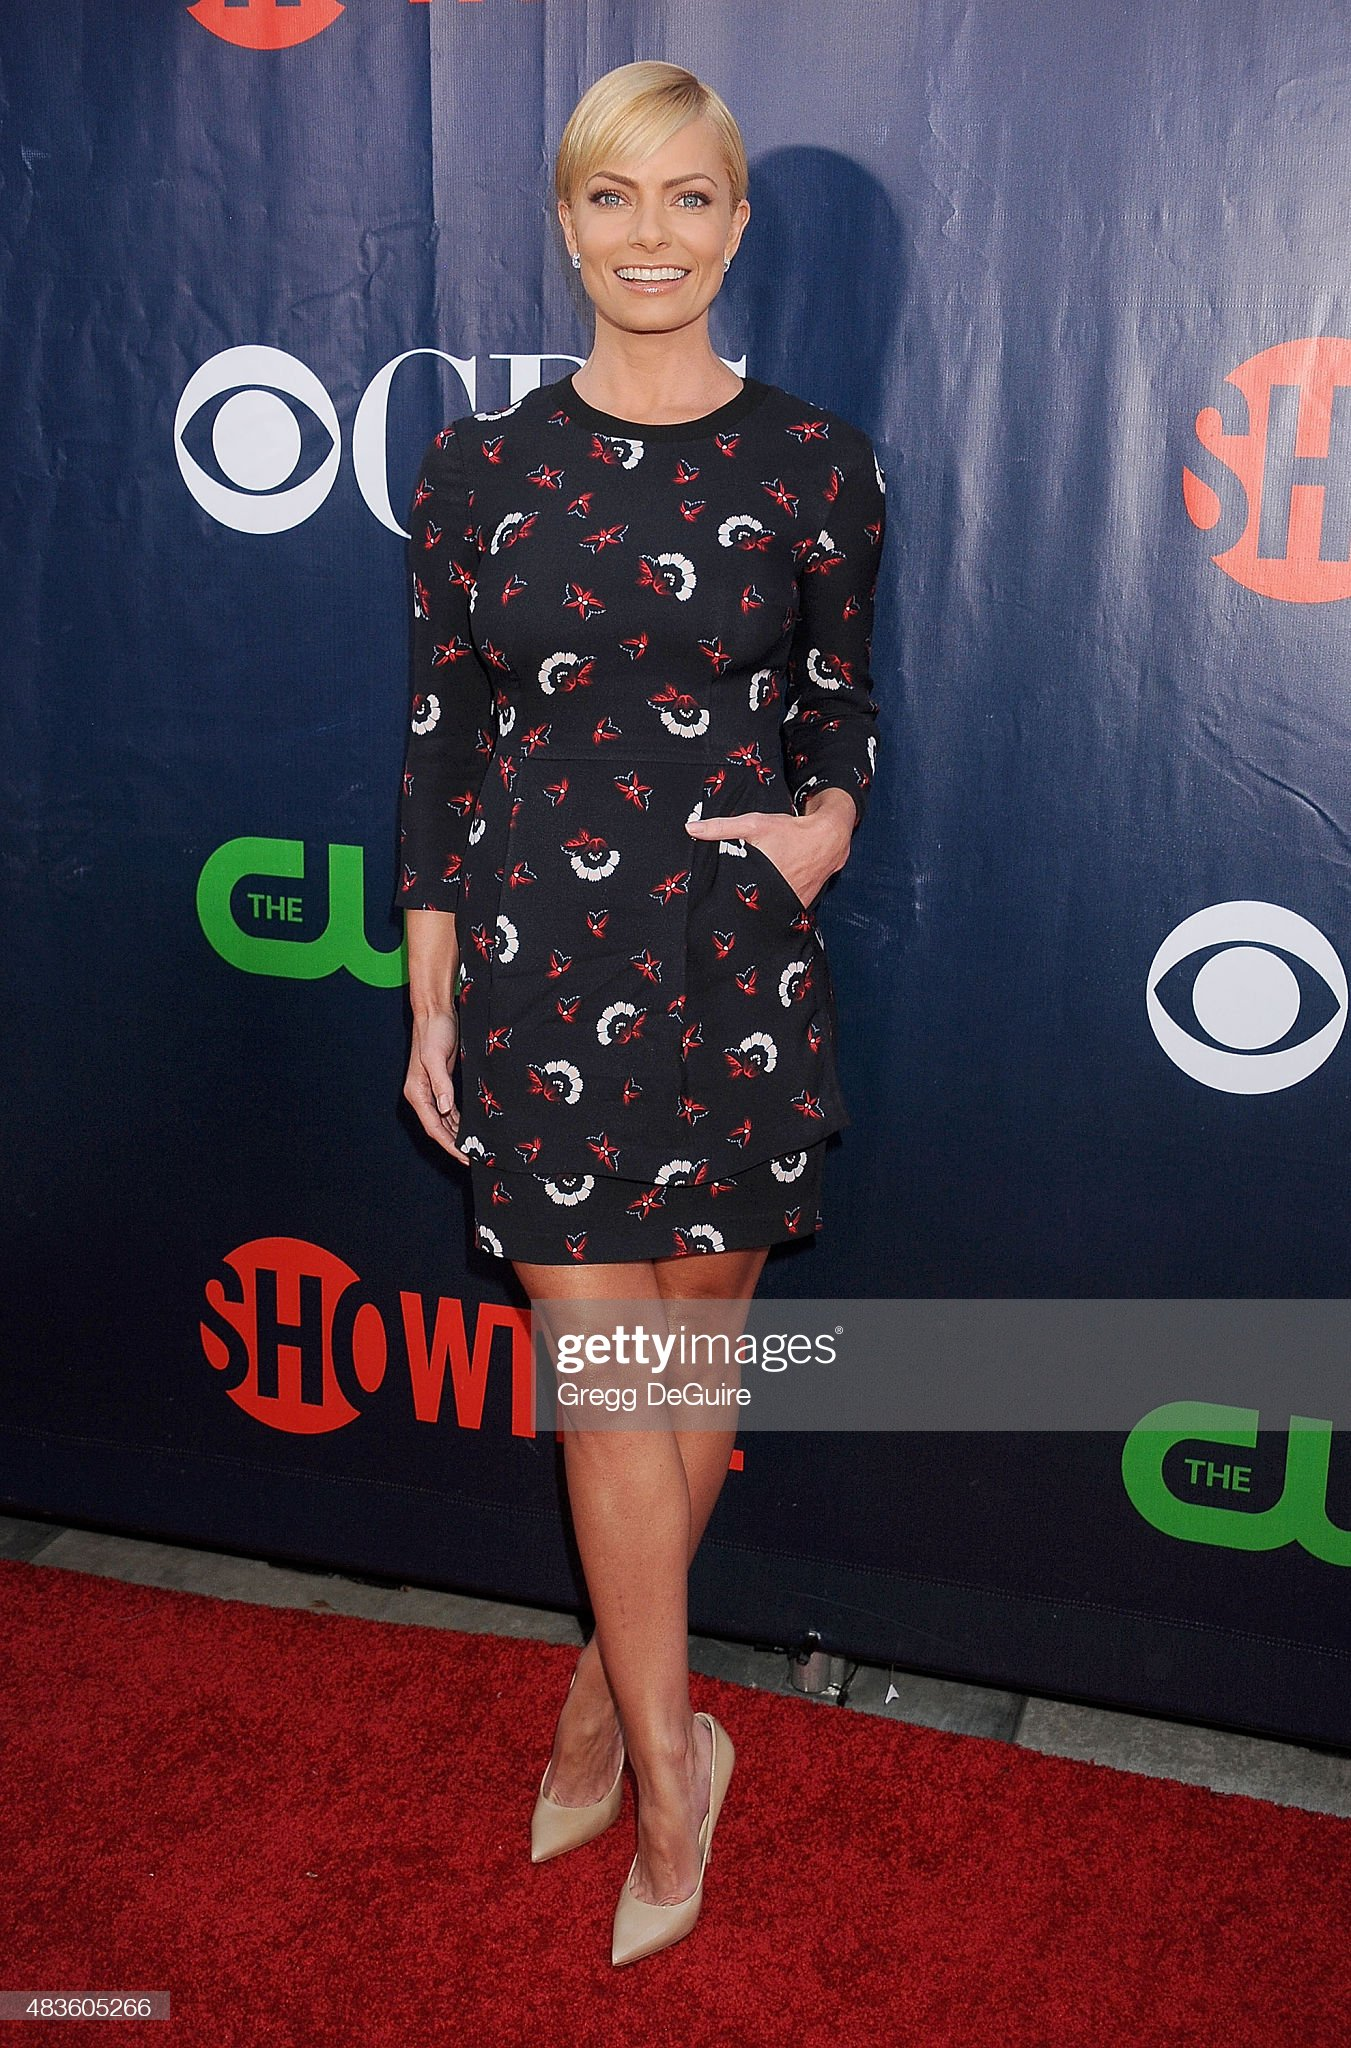 ¿Cuánto mide Jaime Pressly? - Altura - Real height Actress-jaime-pressly-arrives-at-the-cbs-cw-and-showtime-2015-summer-picture-id483605266?s=2048x2048